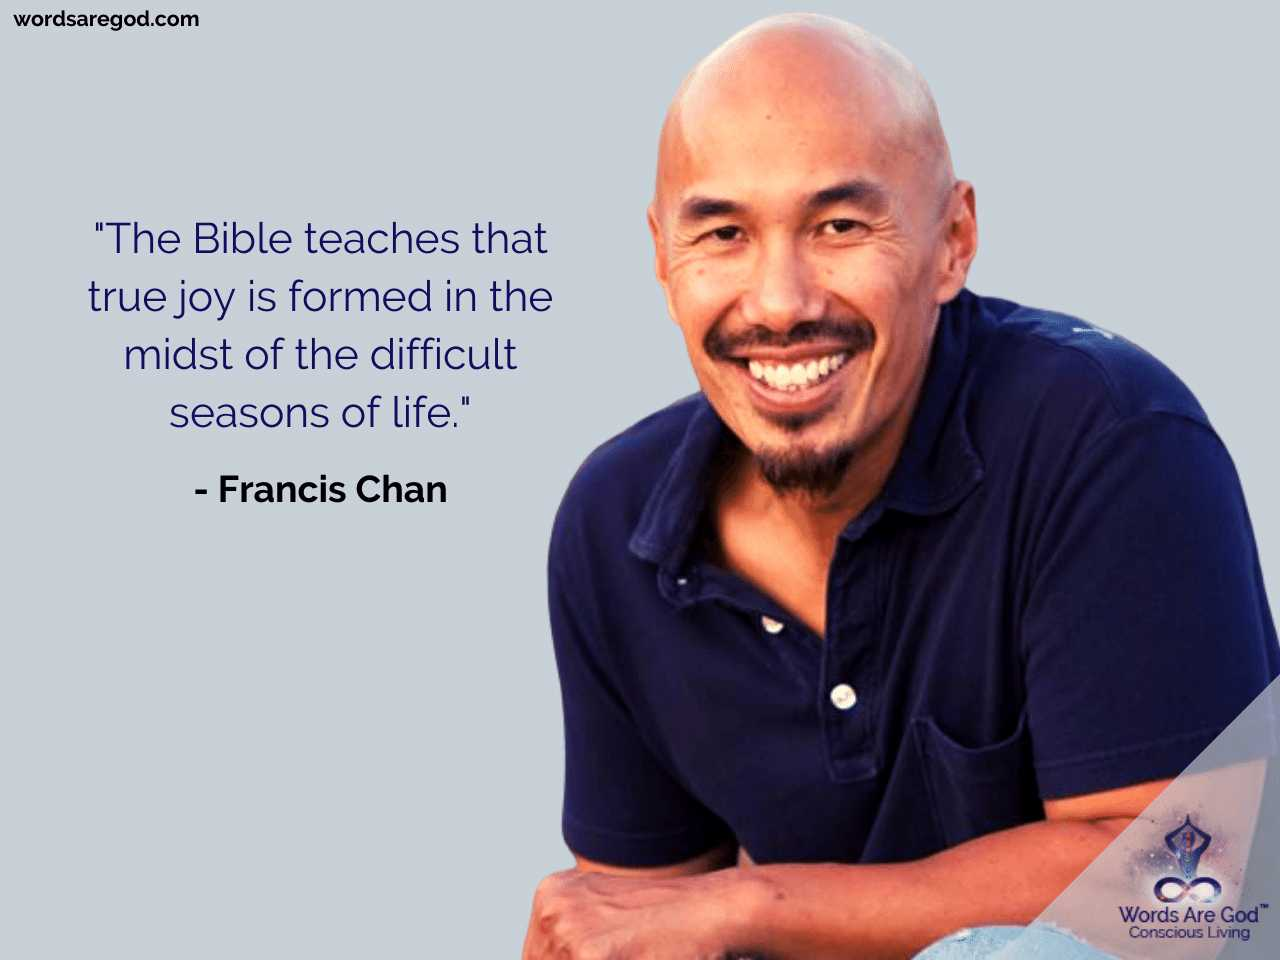 francis_chan_life_quotes3.png